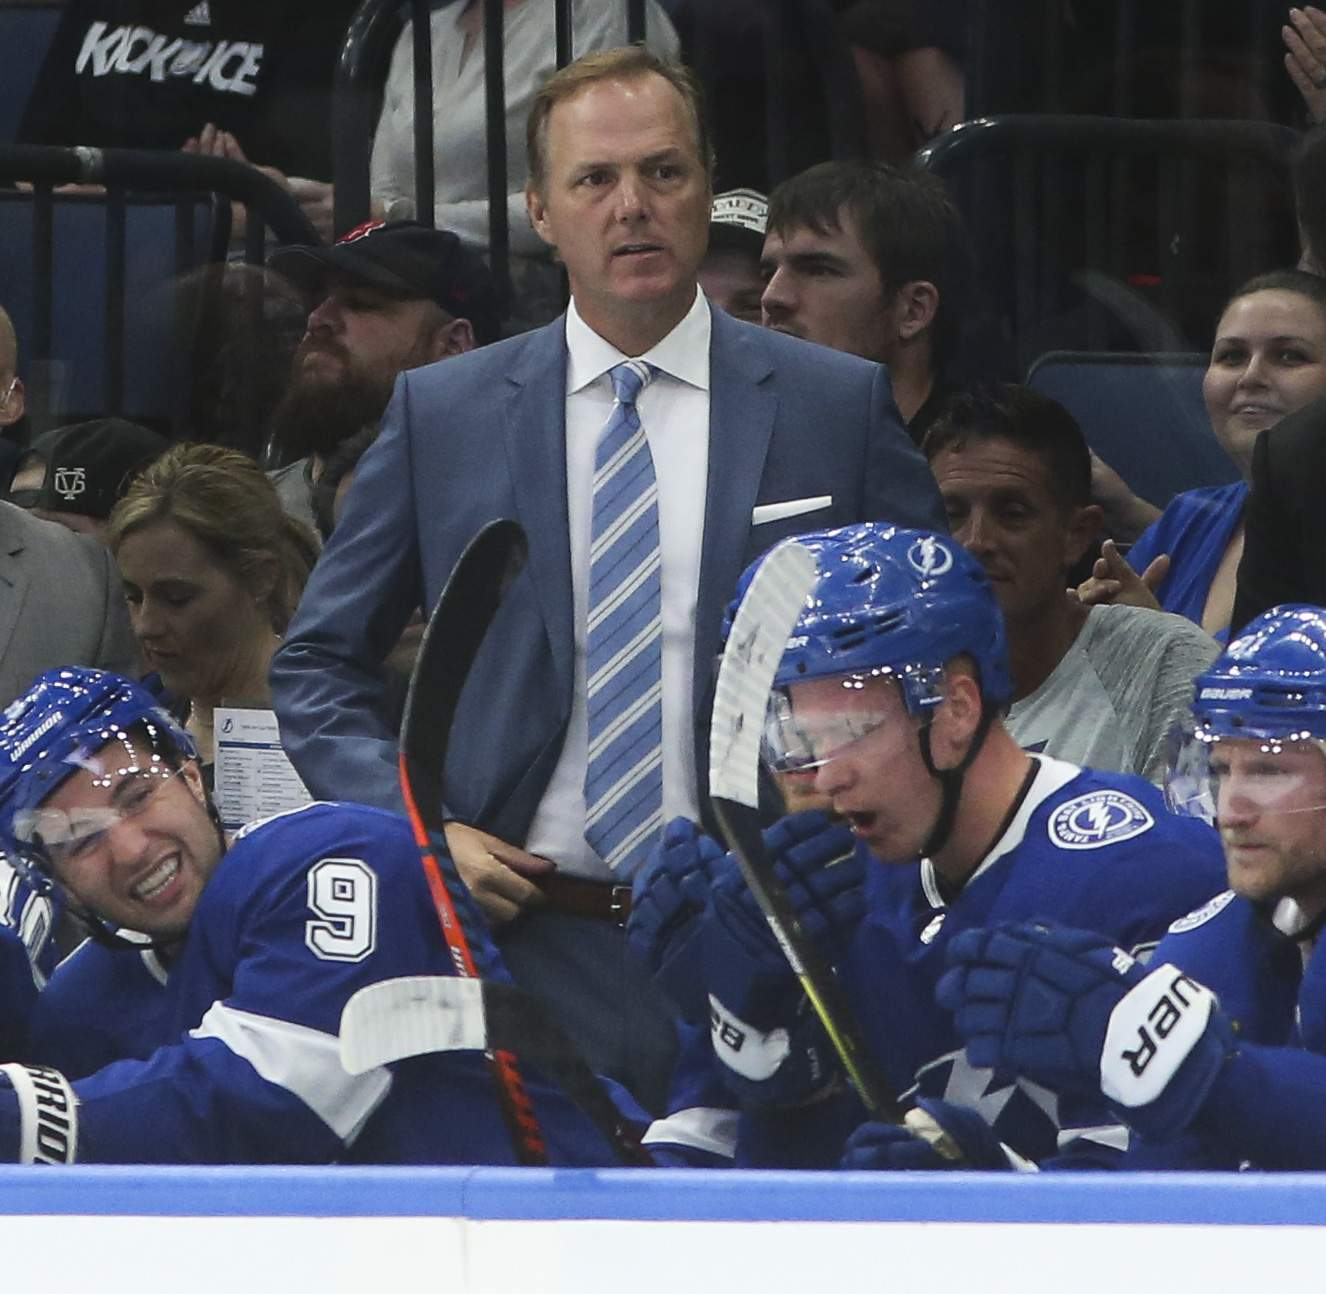 Tampa Bay' Lightning head coach, Jon Cooper